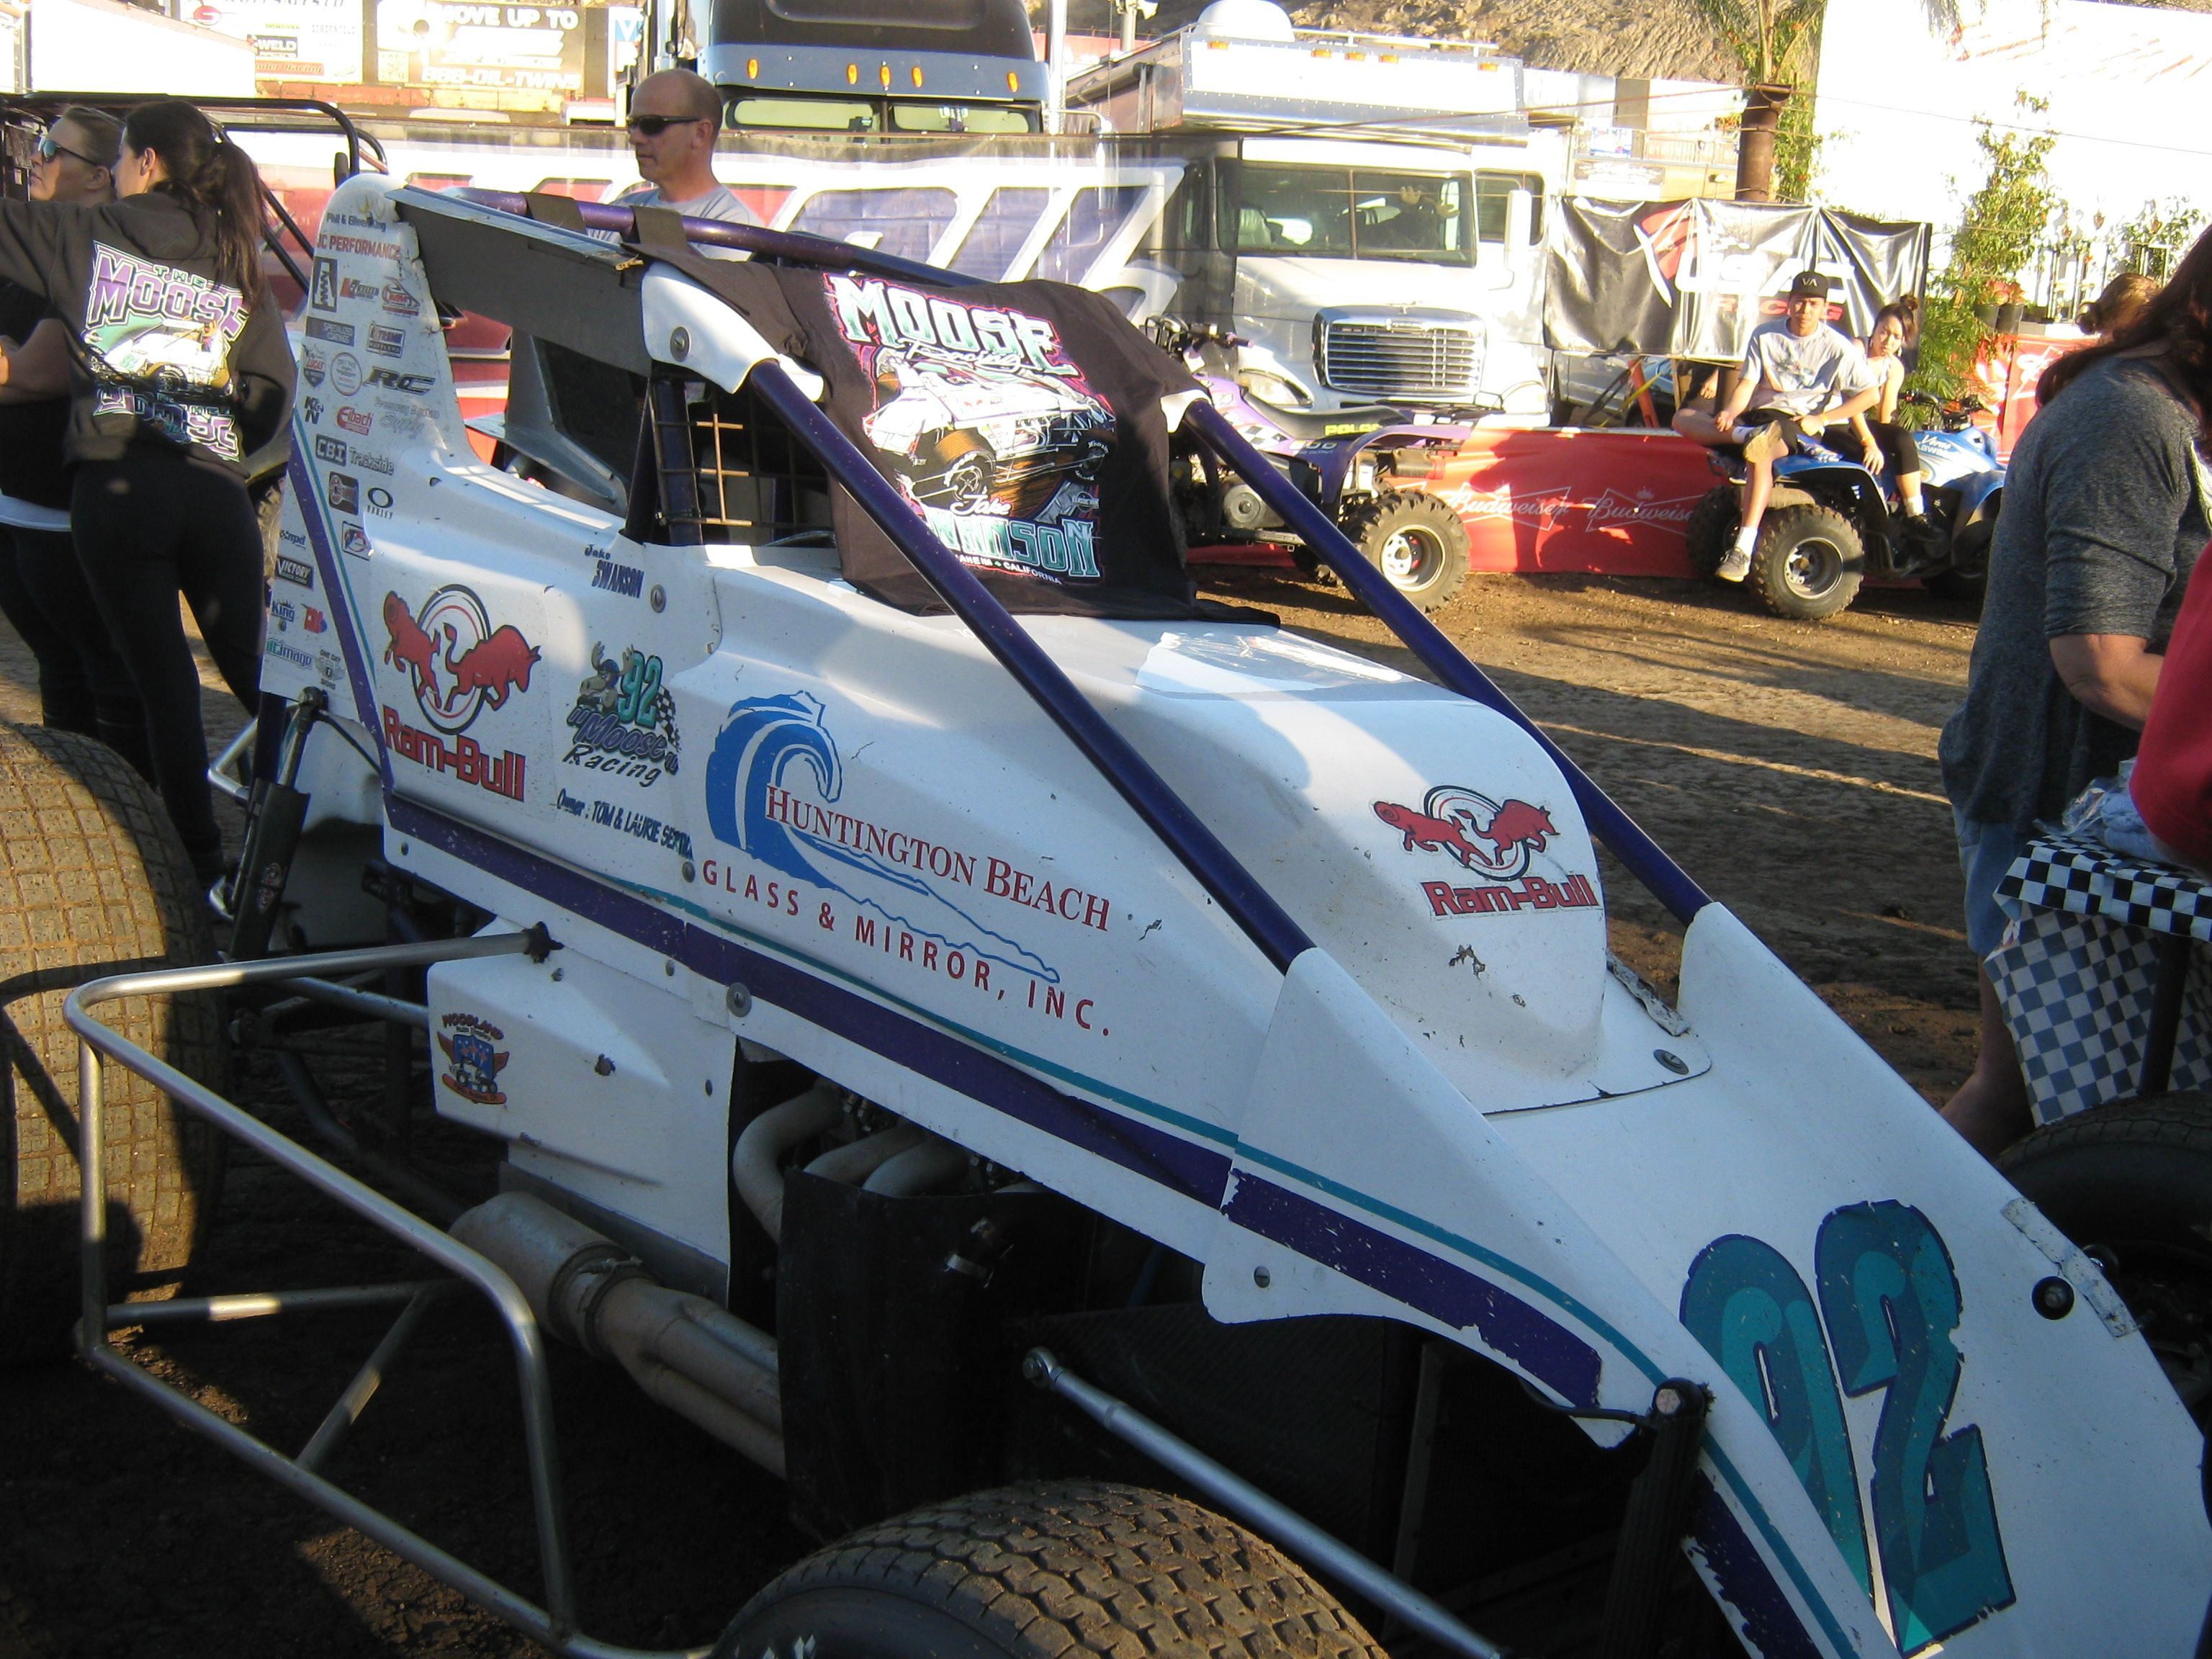 """Pit Walk""  Budweiser Oval Nationals  November 12 - 14, 2015   Perris Auto Speedway   http://perrisautospeedway.com  #budweiserovalnationals #ovalnationals  #usaccra  #sprintcars #sprintcarracing #sprintcarrace  #autospeedway #speedway #attractions #thingstodoinsoutherncalifornia #pasperris#perris #riverside #sanbernardino #corona #anaheim #pomona #fontana #redlands #morenovalley #hemet #menifee"